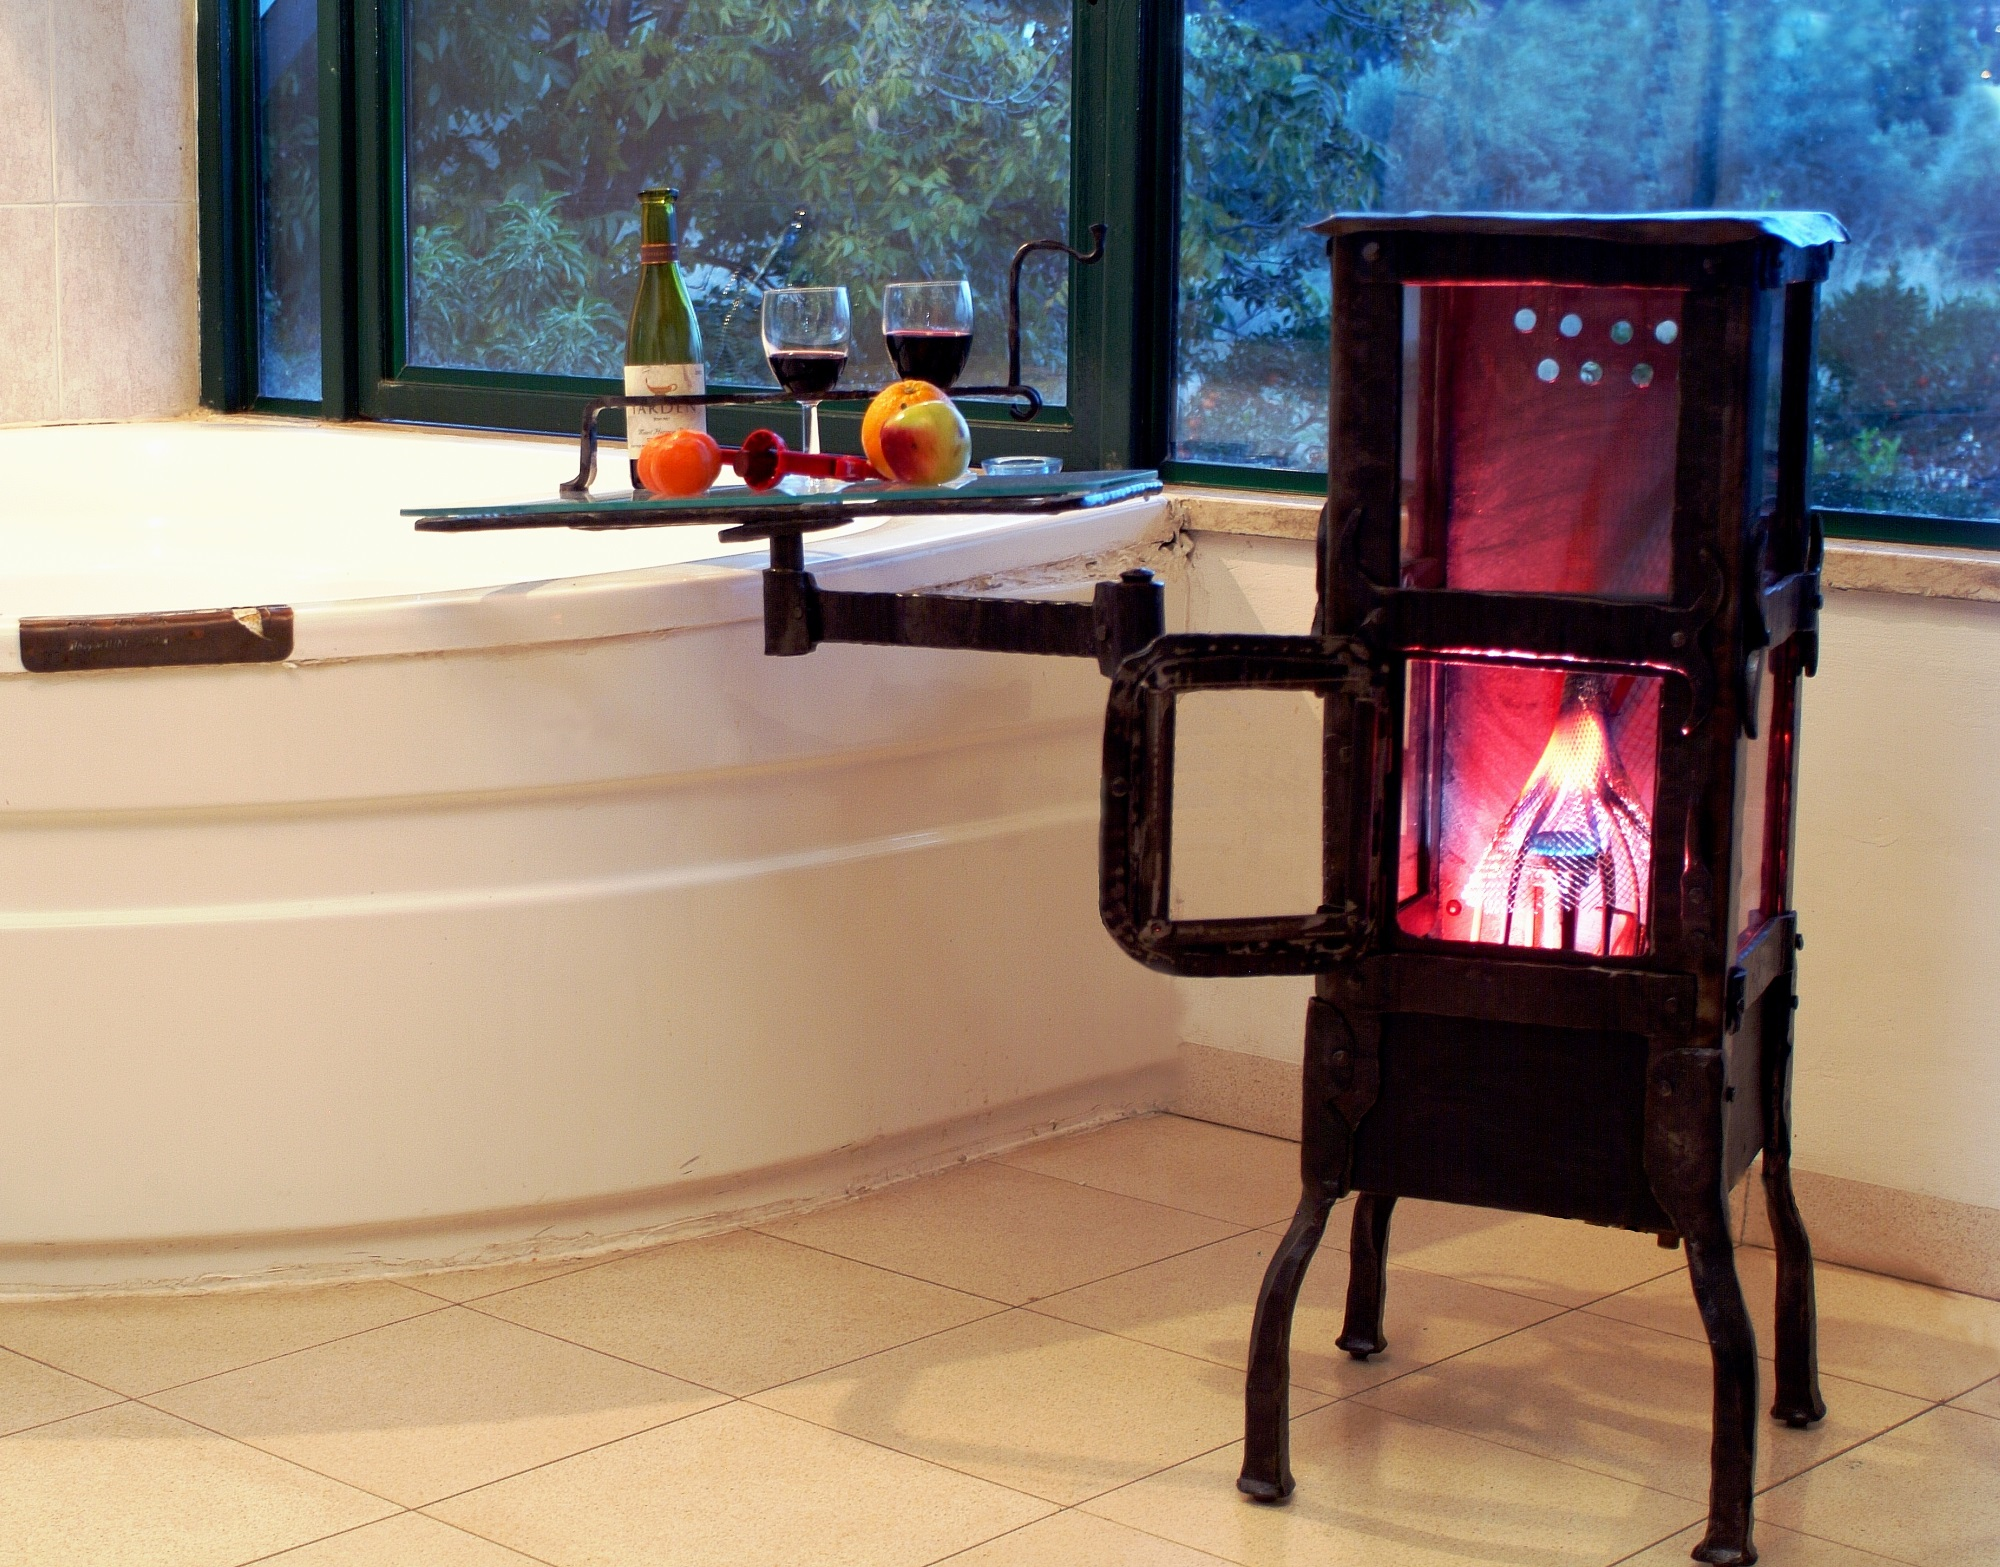 Gas stove of Iron & Glass